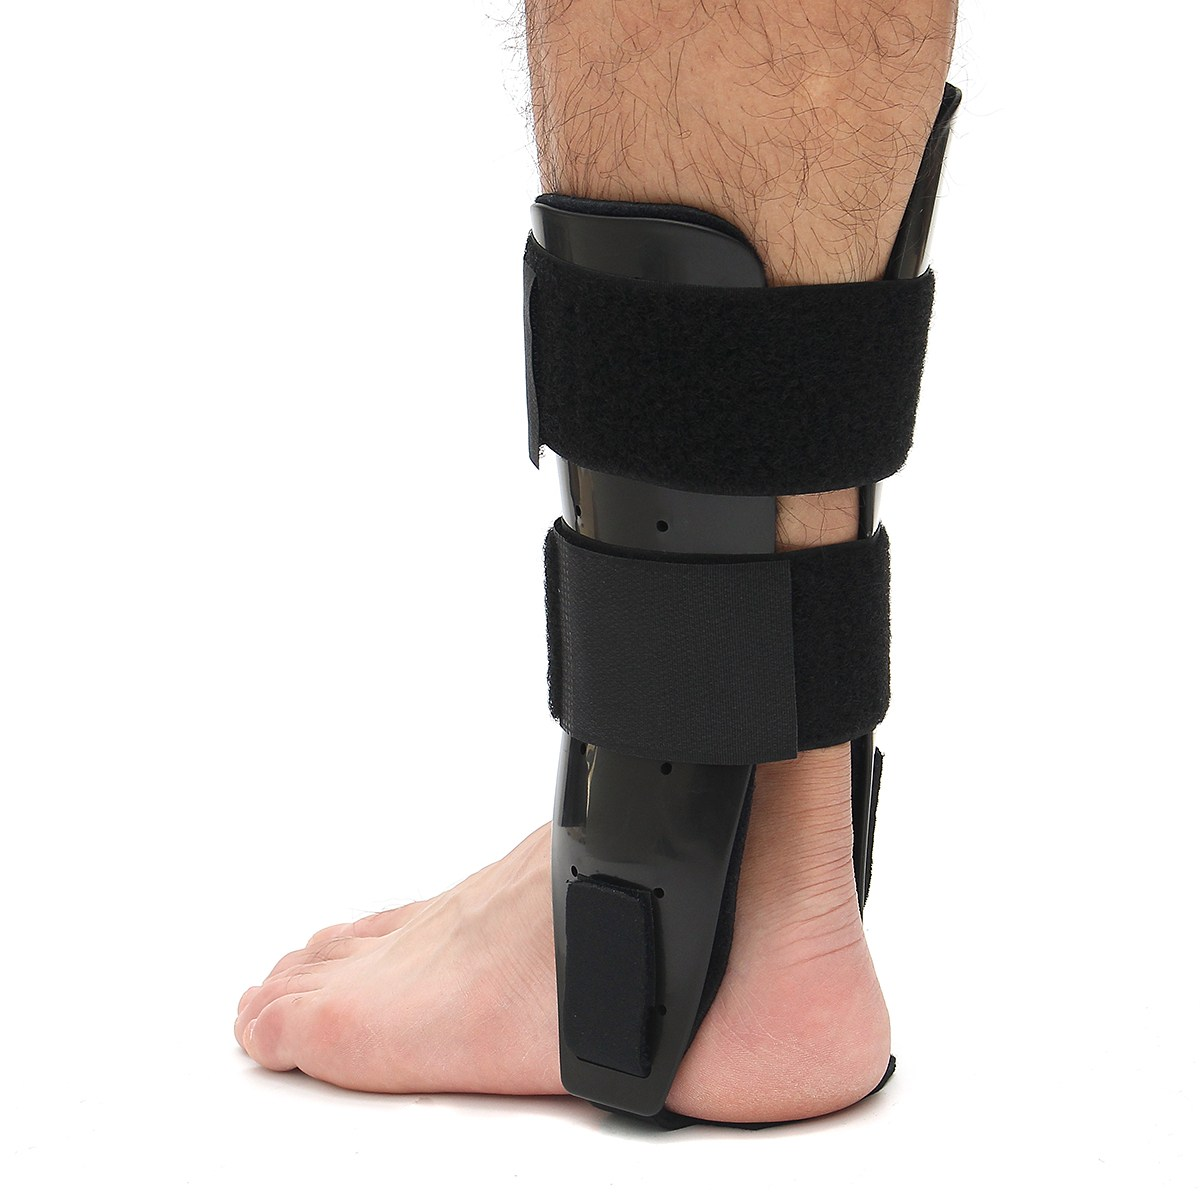 Fitness Ankle Support Fixed Ankle Foot Support Adjustable Ankle Sprain Support Sports Safty Bandage Protective Gear Brace Guard